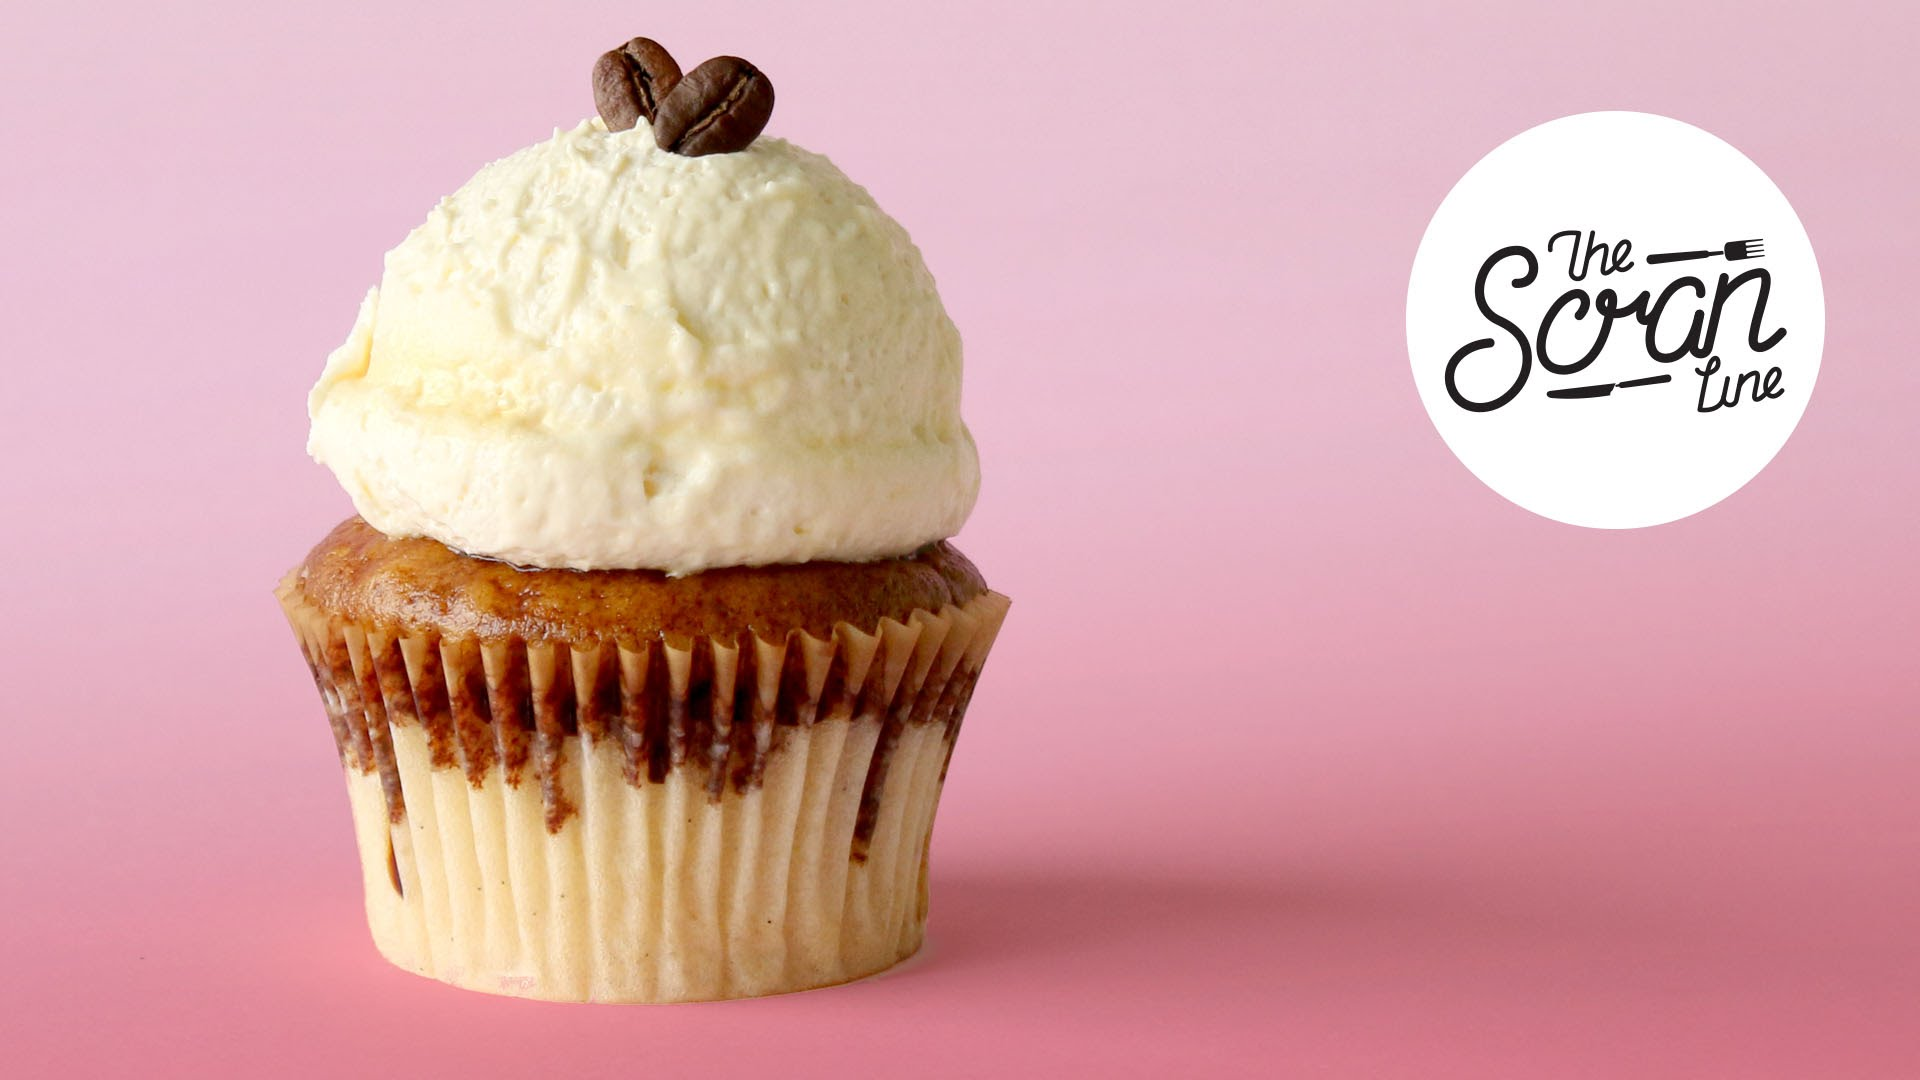 This Cupcake Was Meant For Coffee Lovers